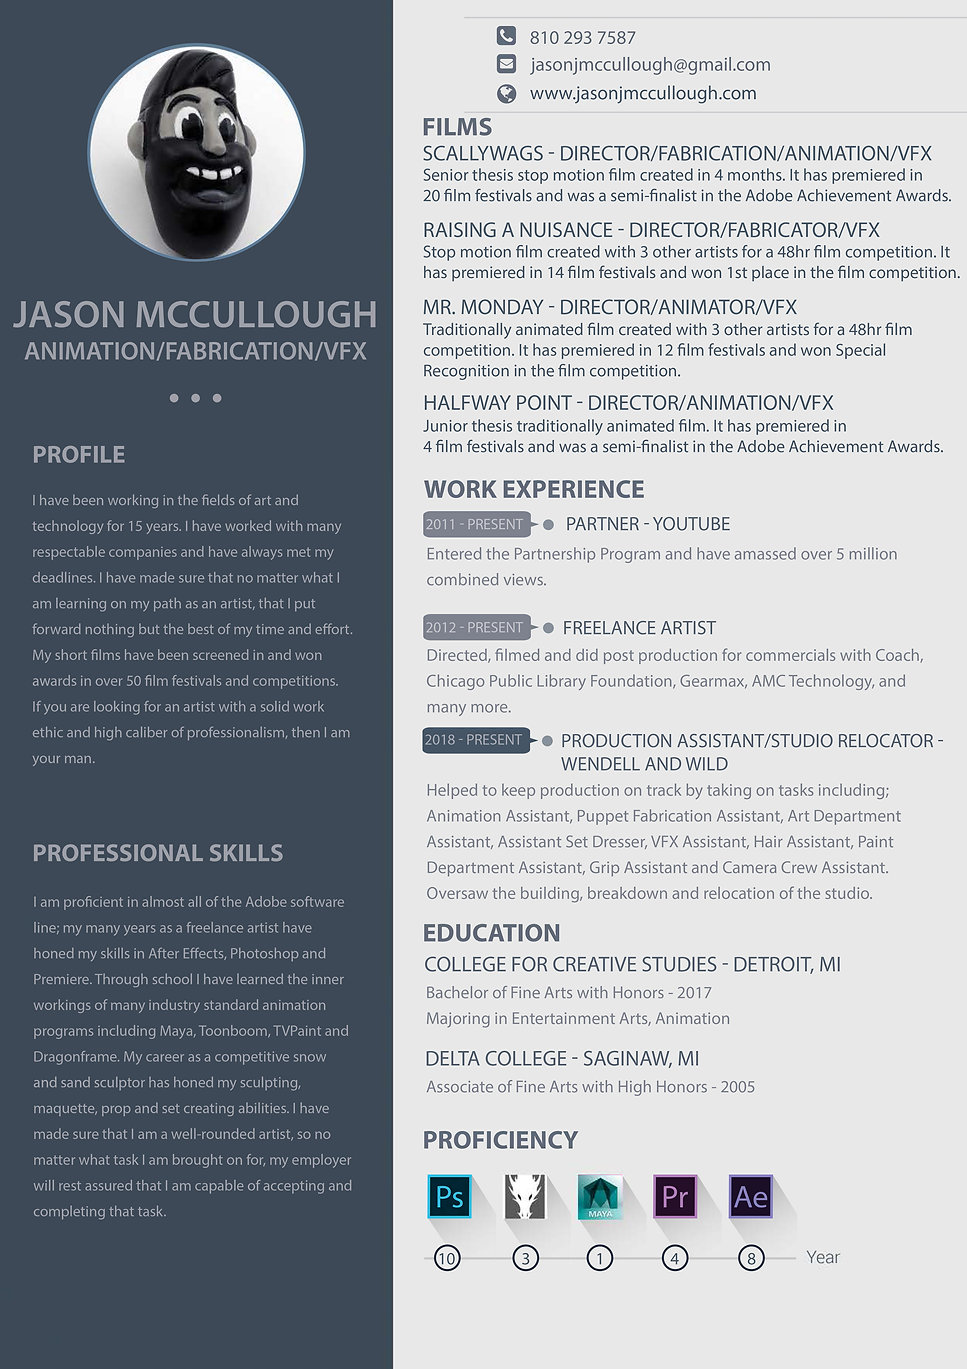 Jason_McCullough_Resume_2018.jpg